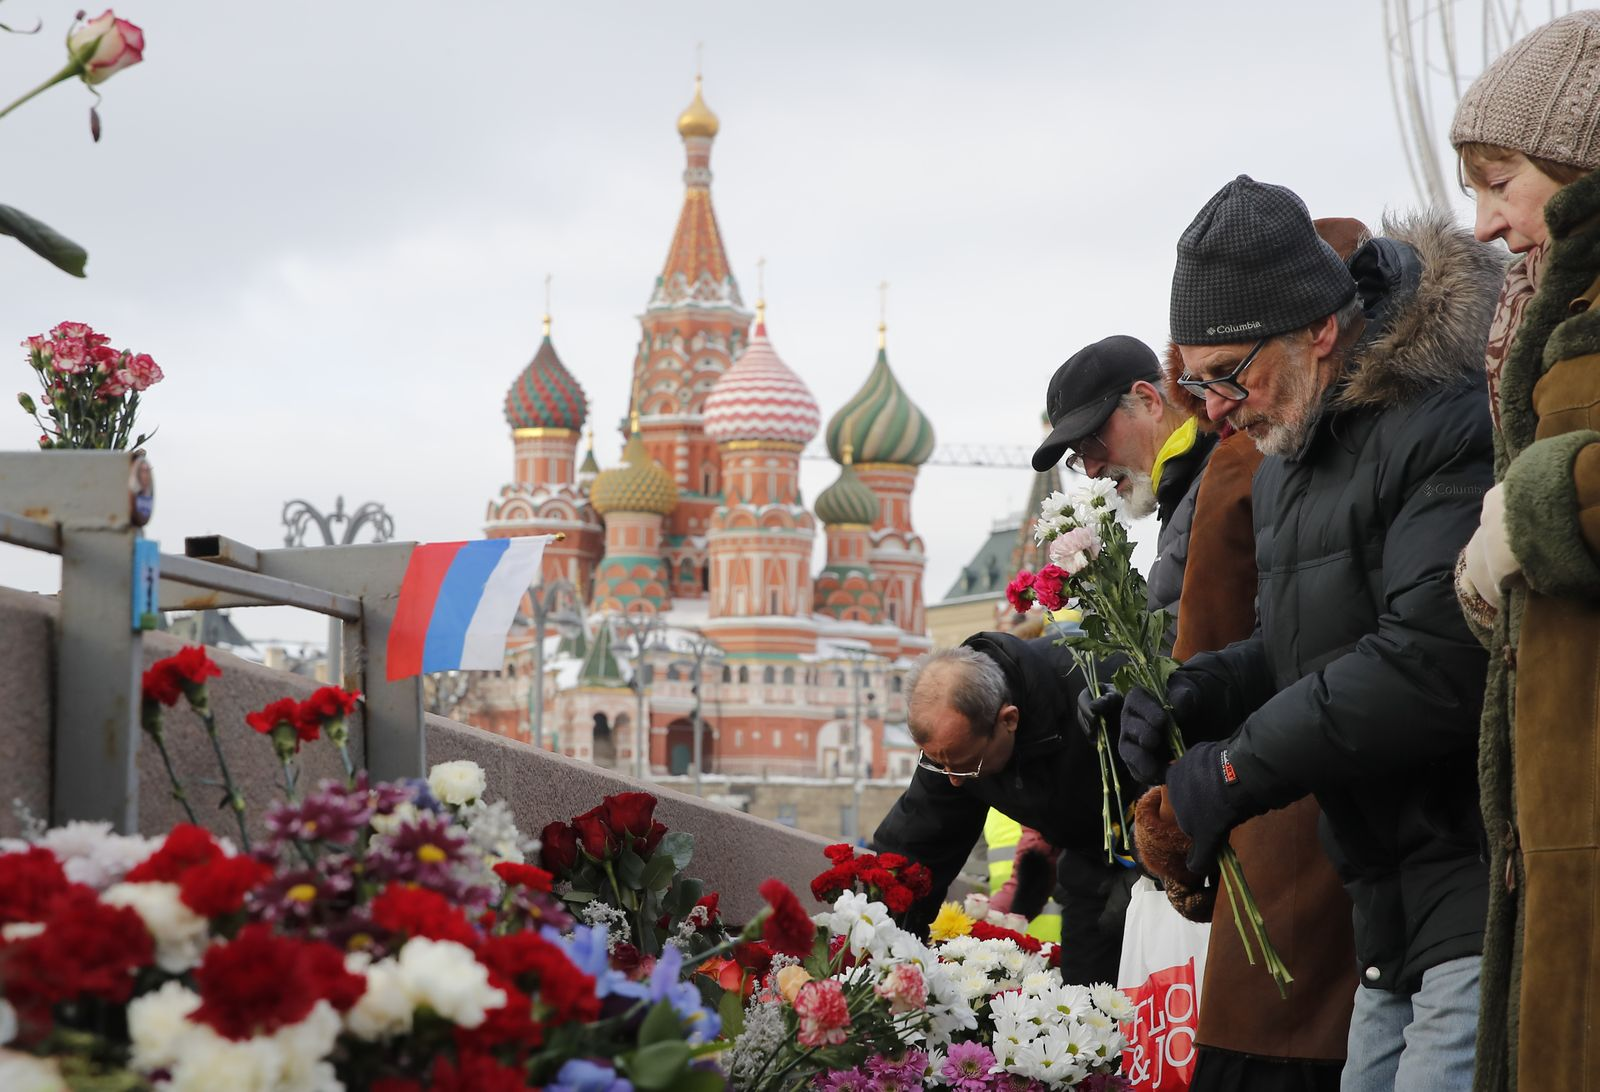 People visit the site of the assassination of Russian opposition leader Nemtsov in central Moscow